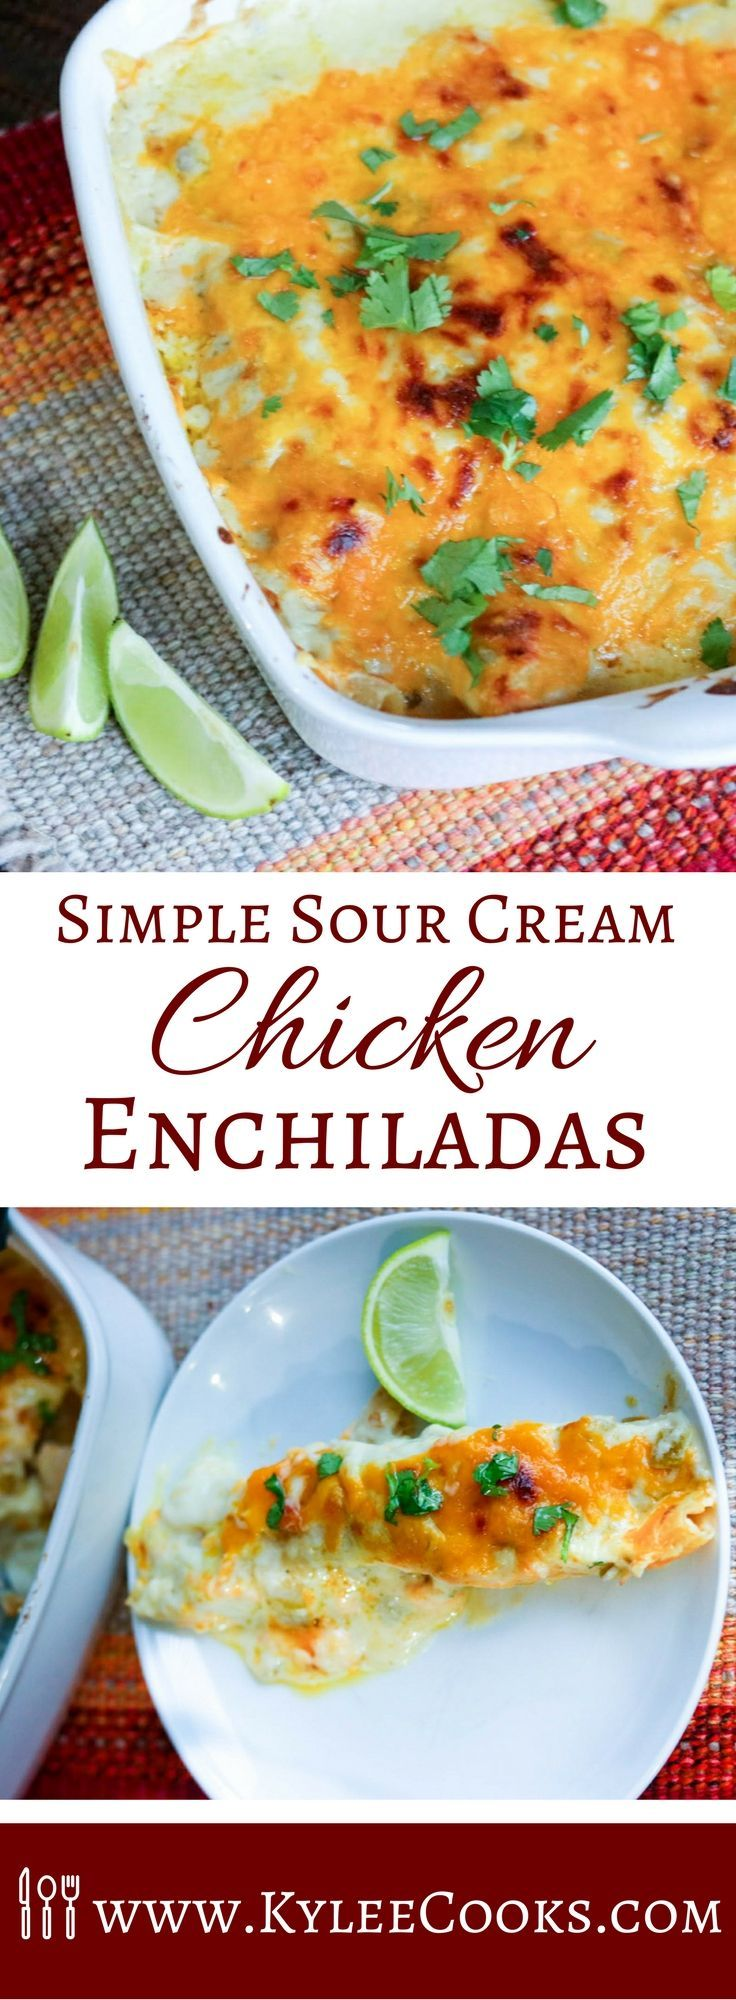 A Very Easy Recipe For Simple Sour Cream Chicken Enchiladas With A Creamy Homemade Sour Cream Chicken Sour Cream Chicken Enchilada Recipe Walnut Chicken Recipe